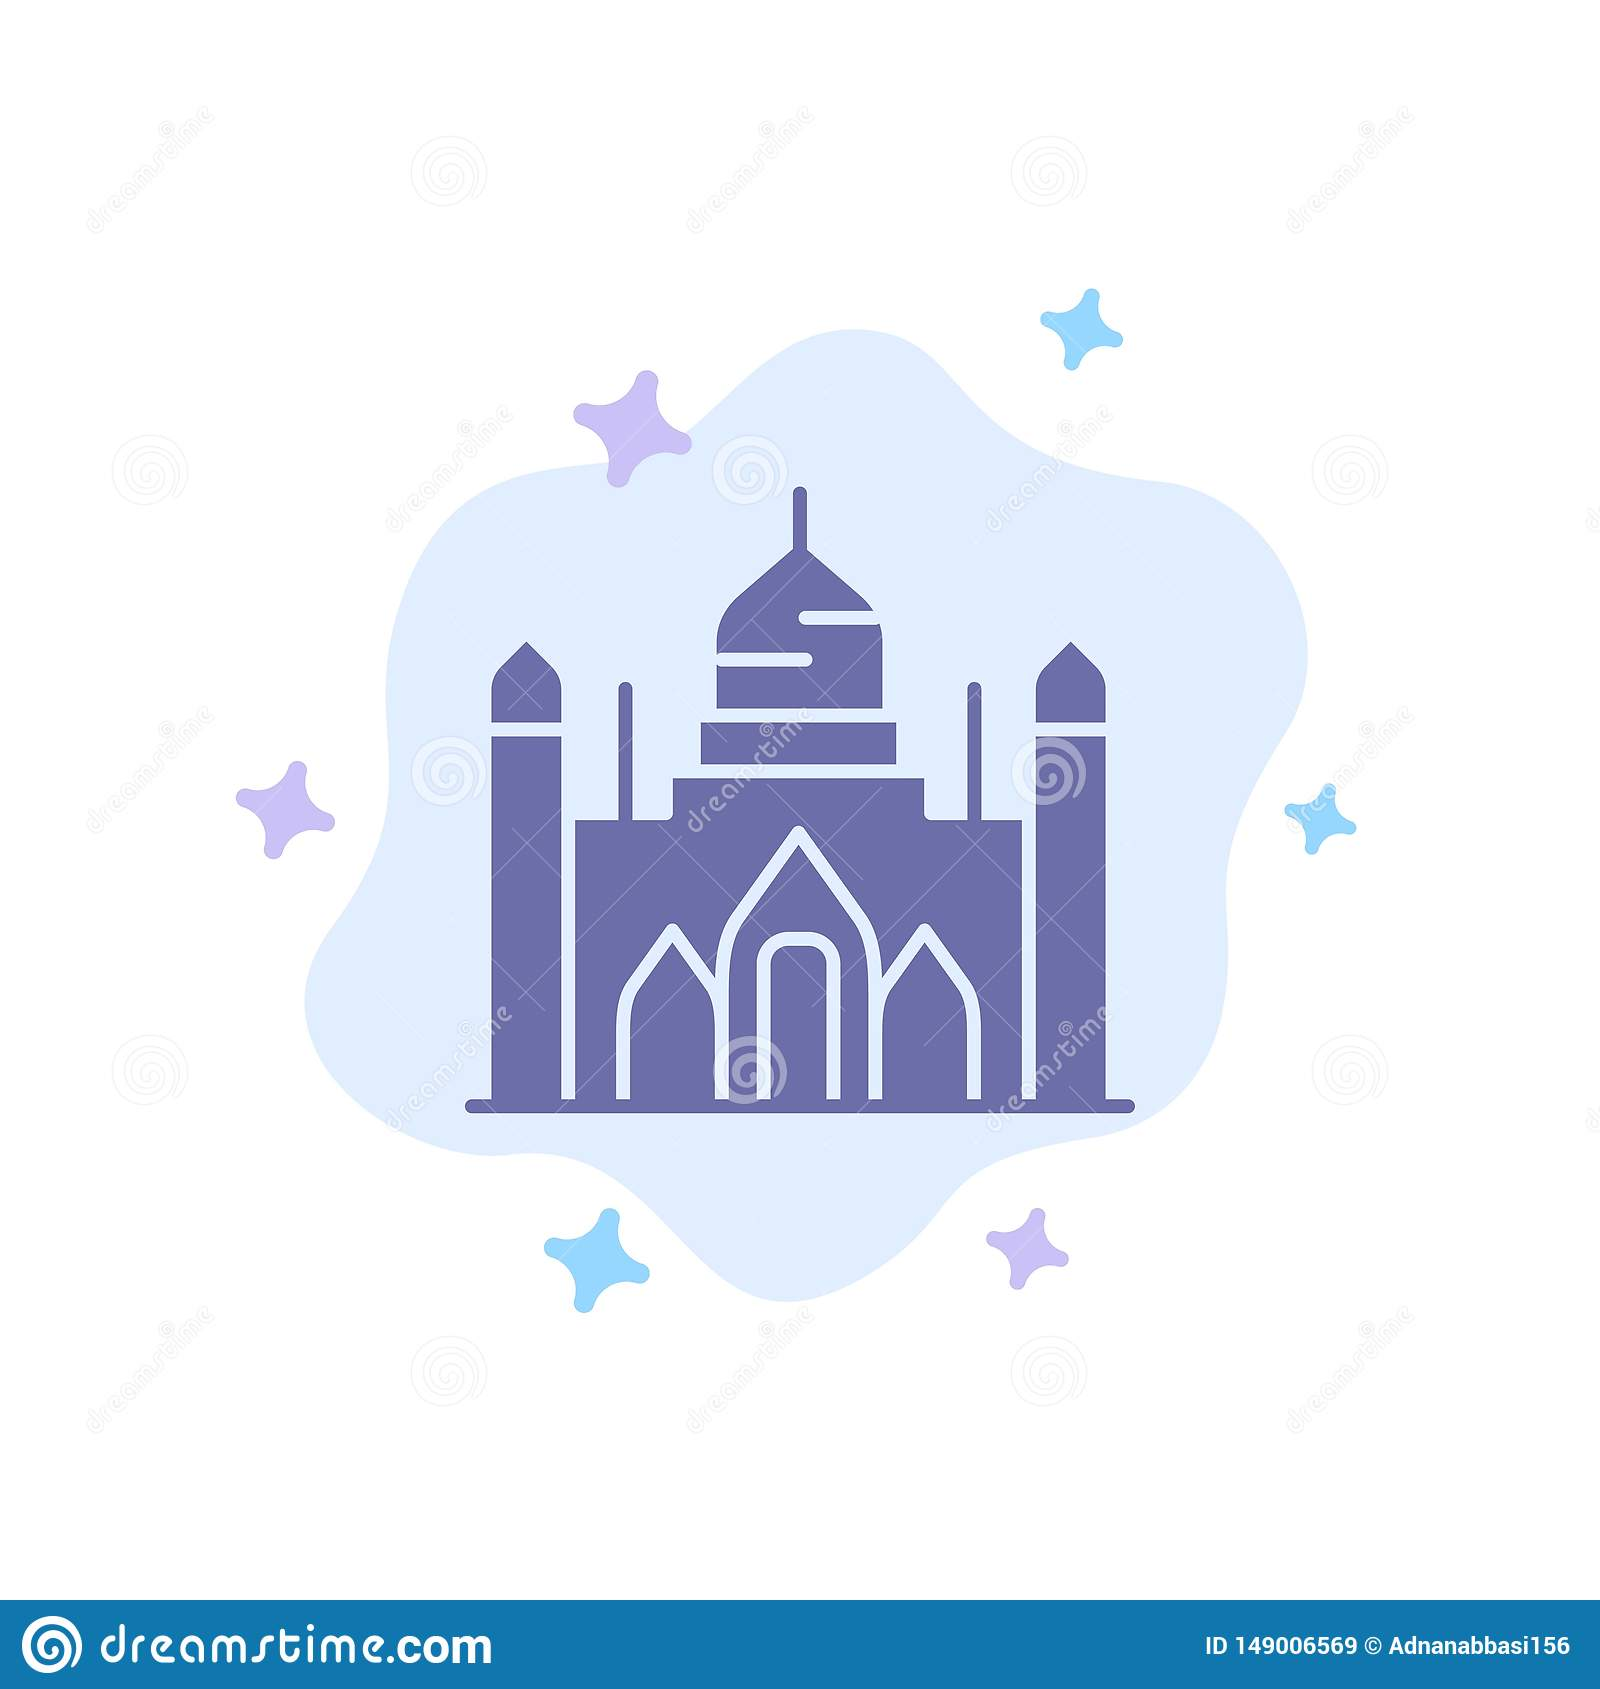 Aurangabad Fort, Bangladesh, Dhaka, Lalbagh Blue Icon on Abstract Cloud Background